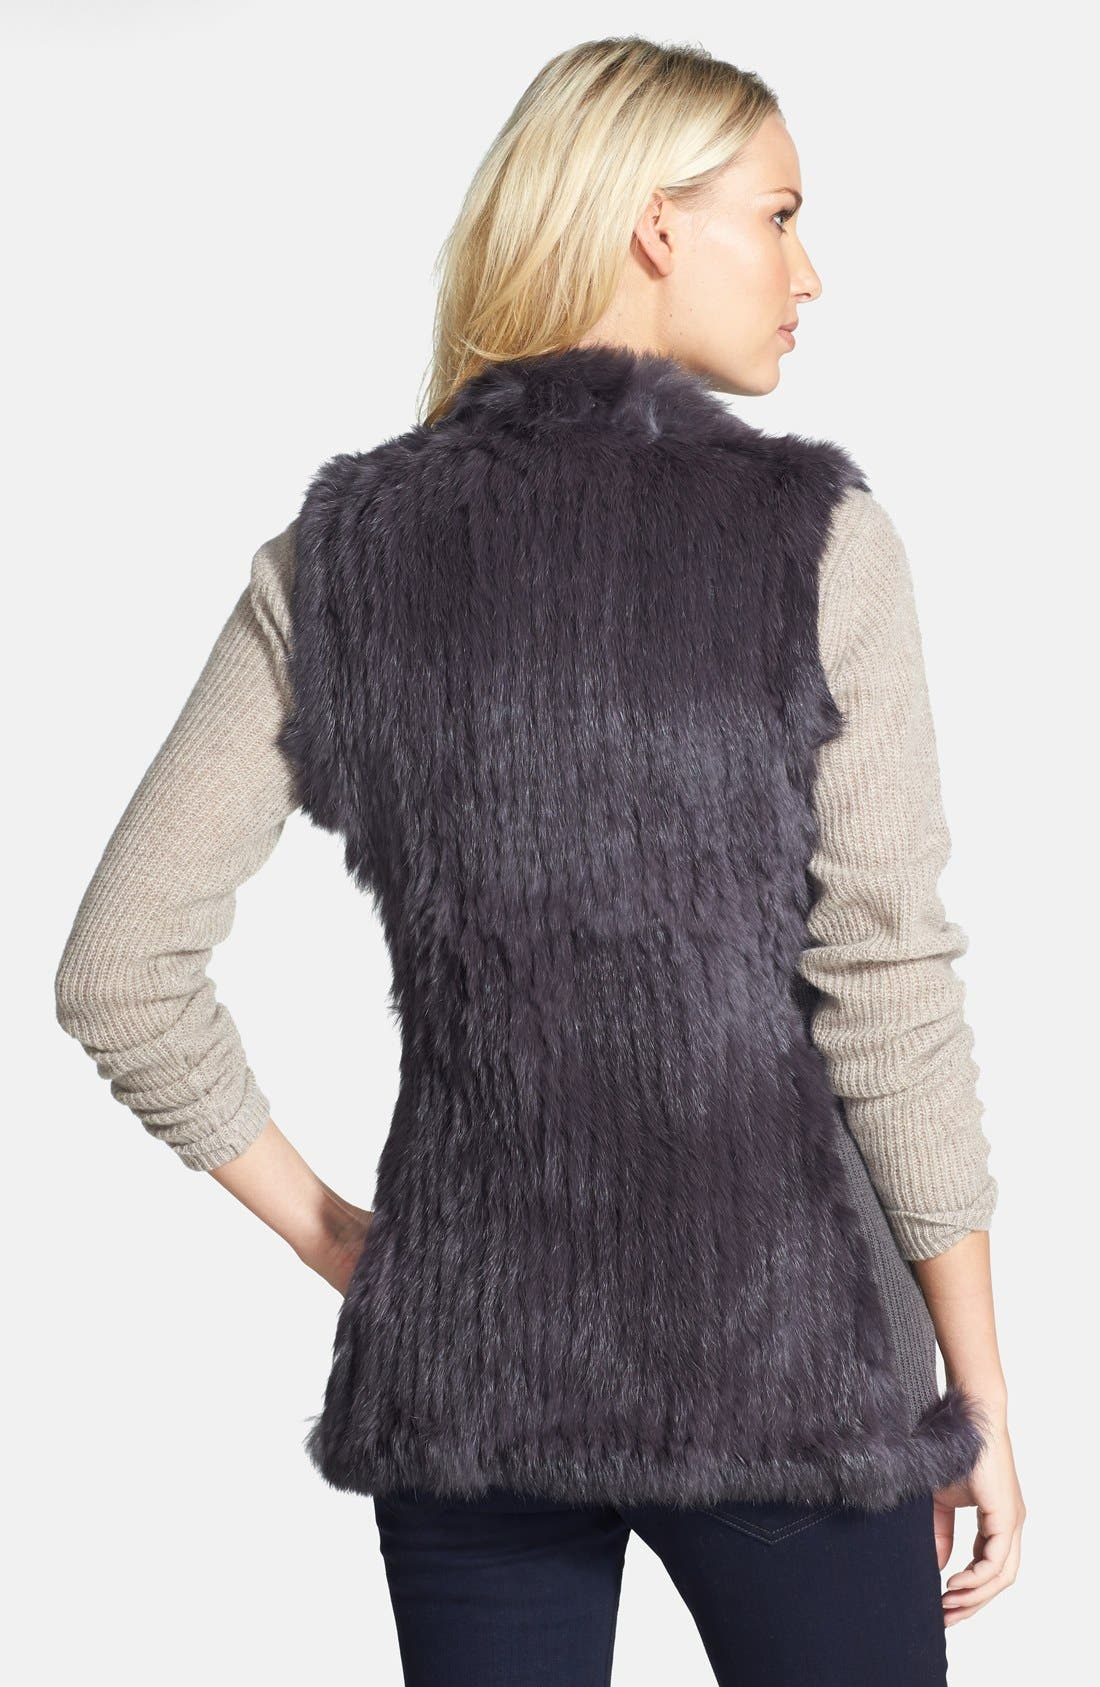 Genuine Rabbit Fur & Knit Vest,                             Alternate thumbnail 2, color,                             Charcoal